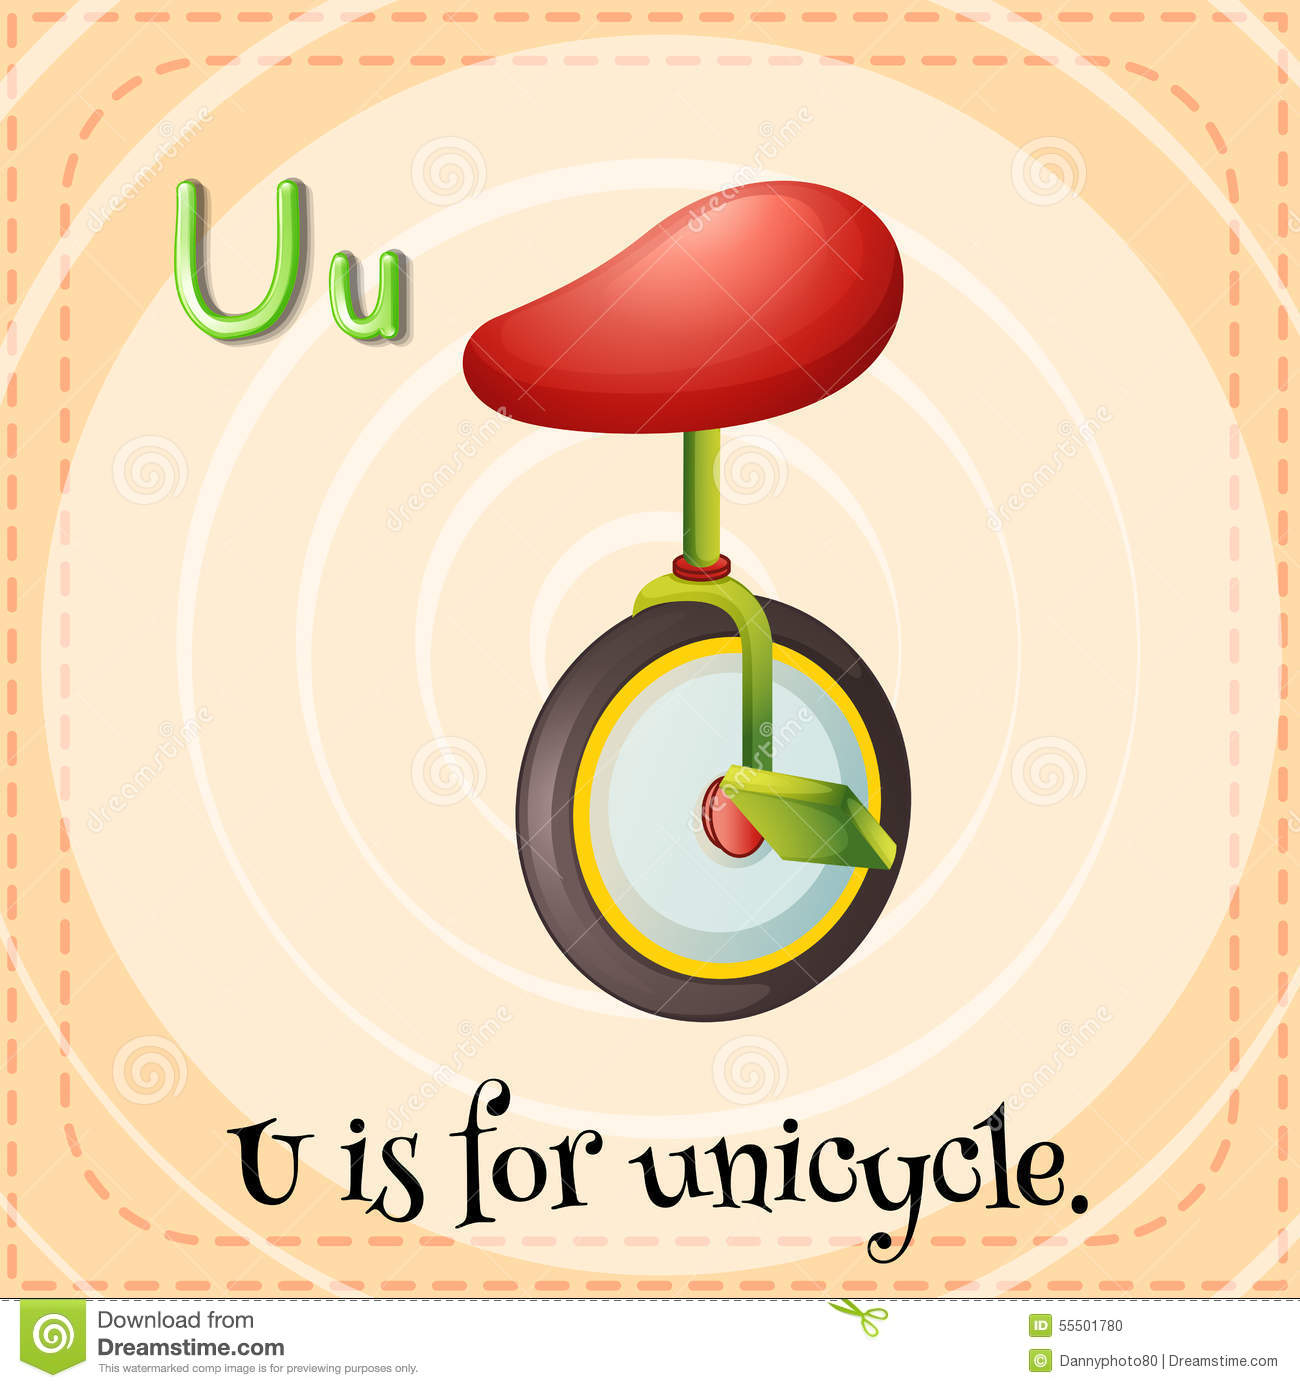 Unicycle Cartoons Illustrations Amp Vector Stock Images